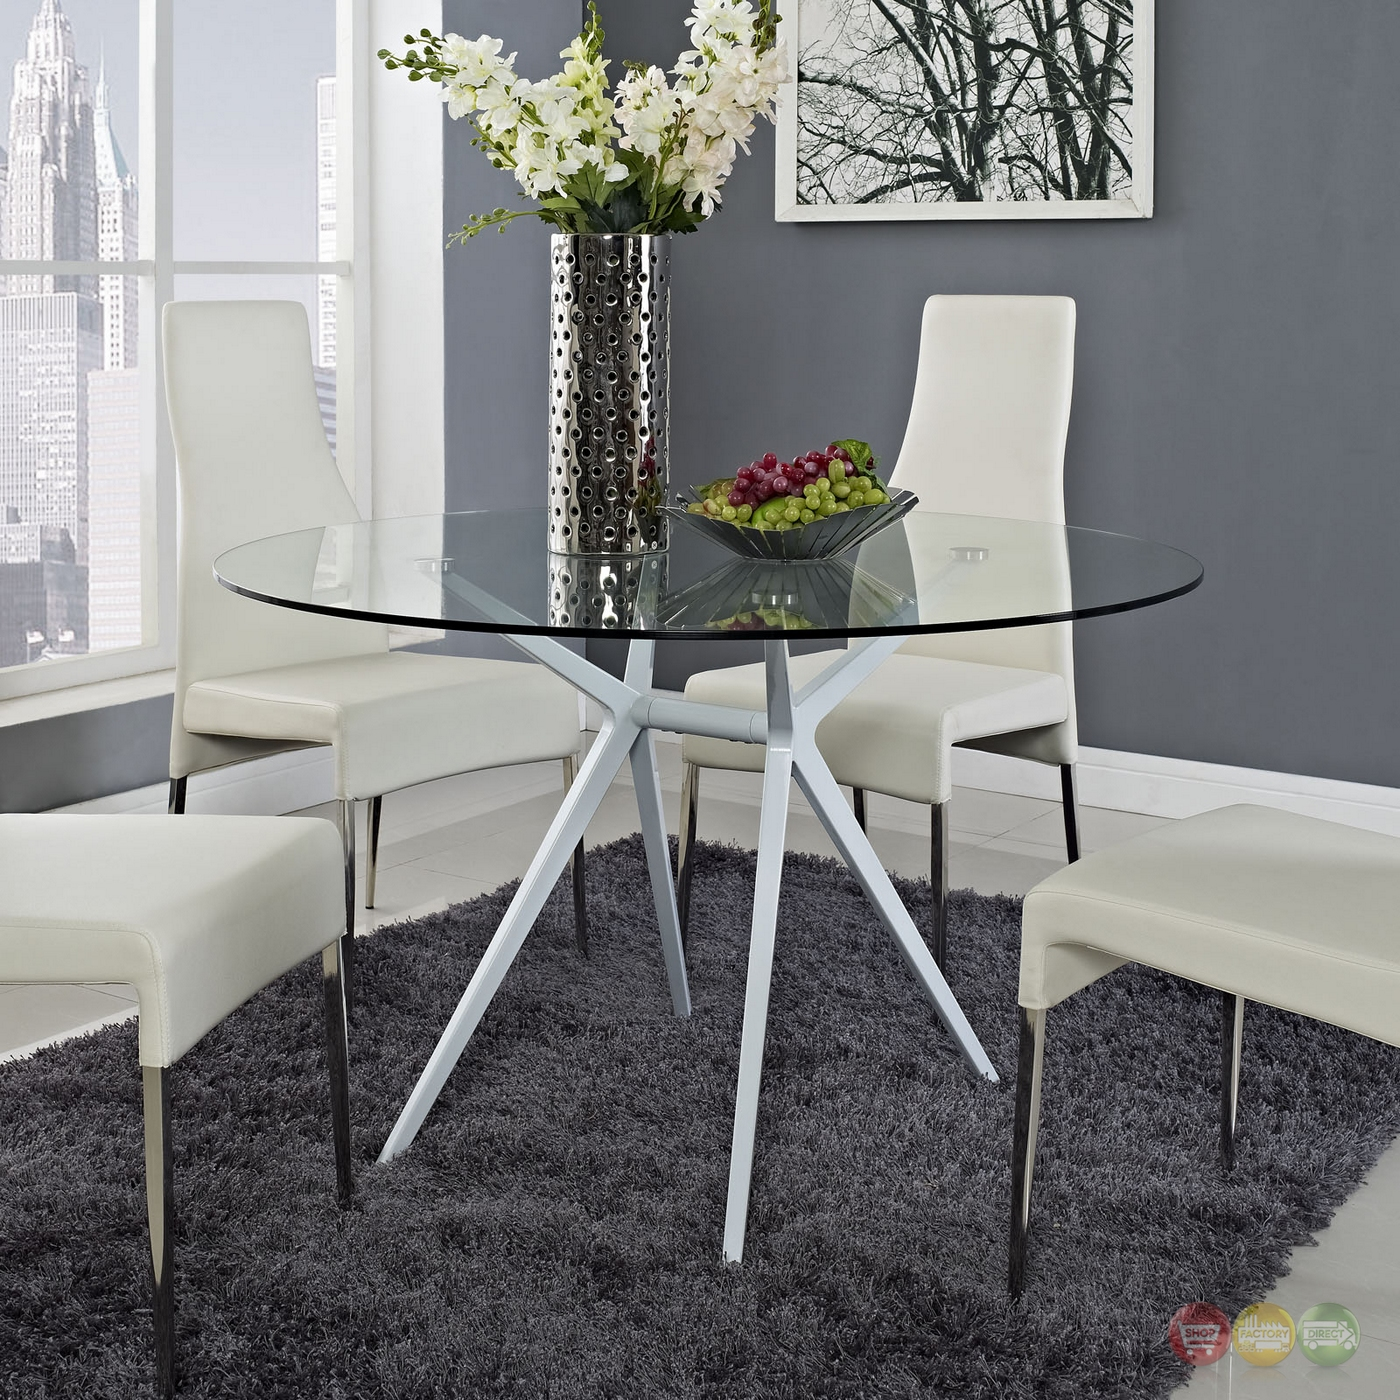 "Tilt Modernistic 47"" Round Dining Table With Tempered"